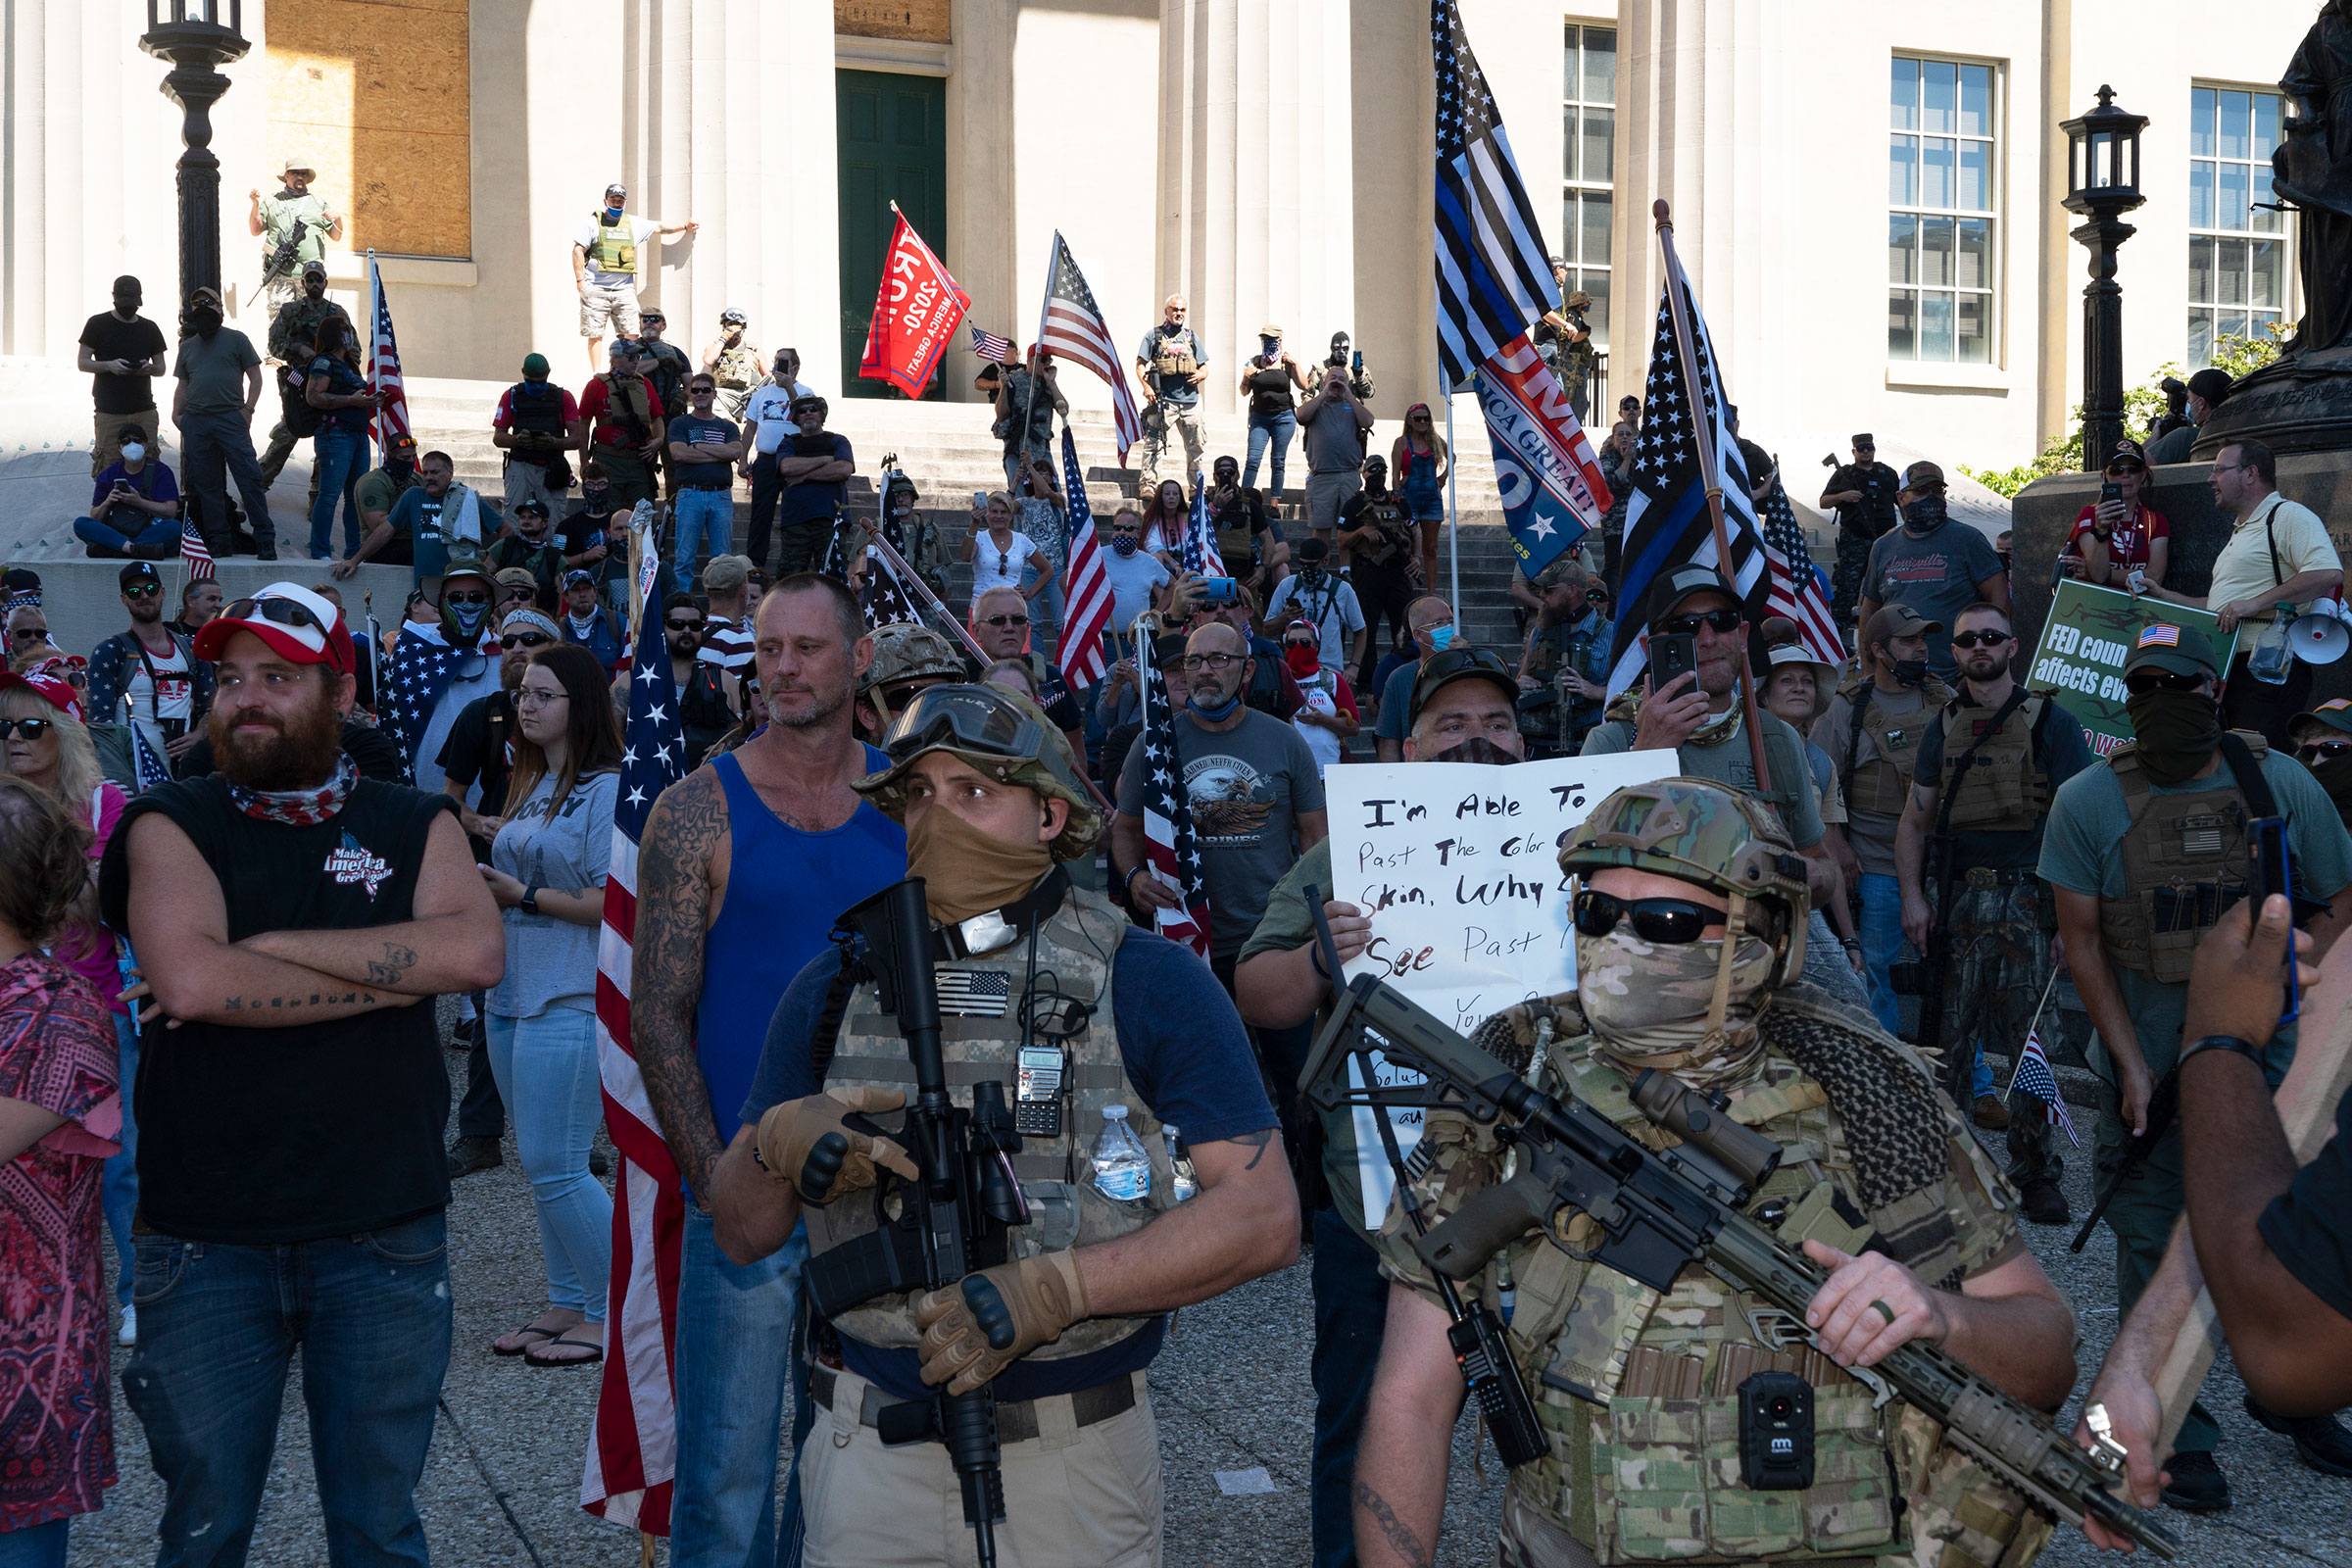 A right-wing group gathers at Jefferson Square, the site of the Breonna Taylor memorial Louisville, Ky., on Sept. 5, 2020.